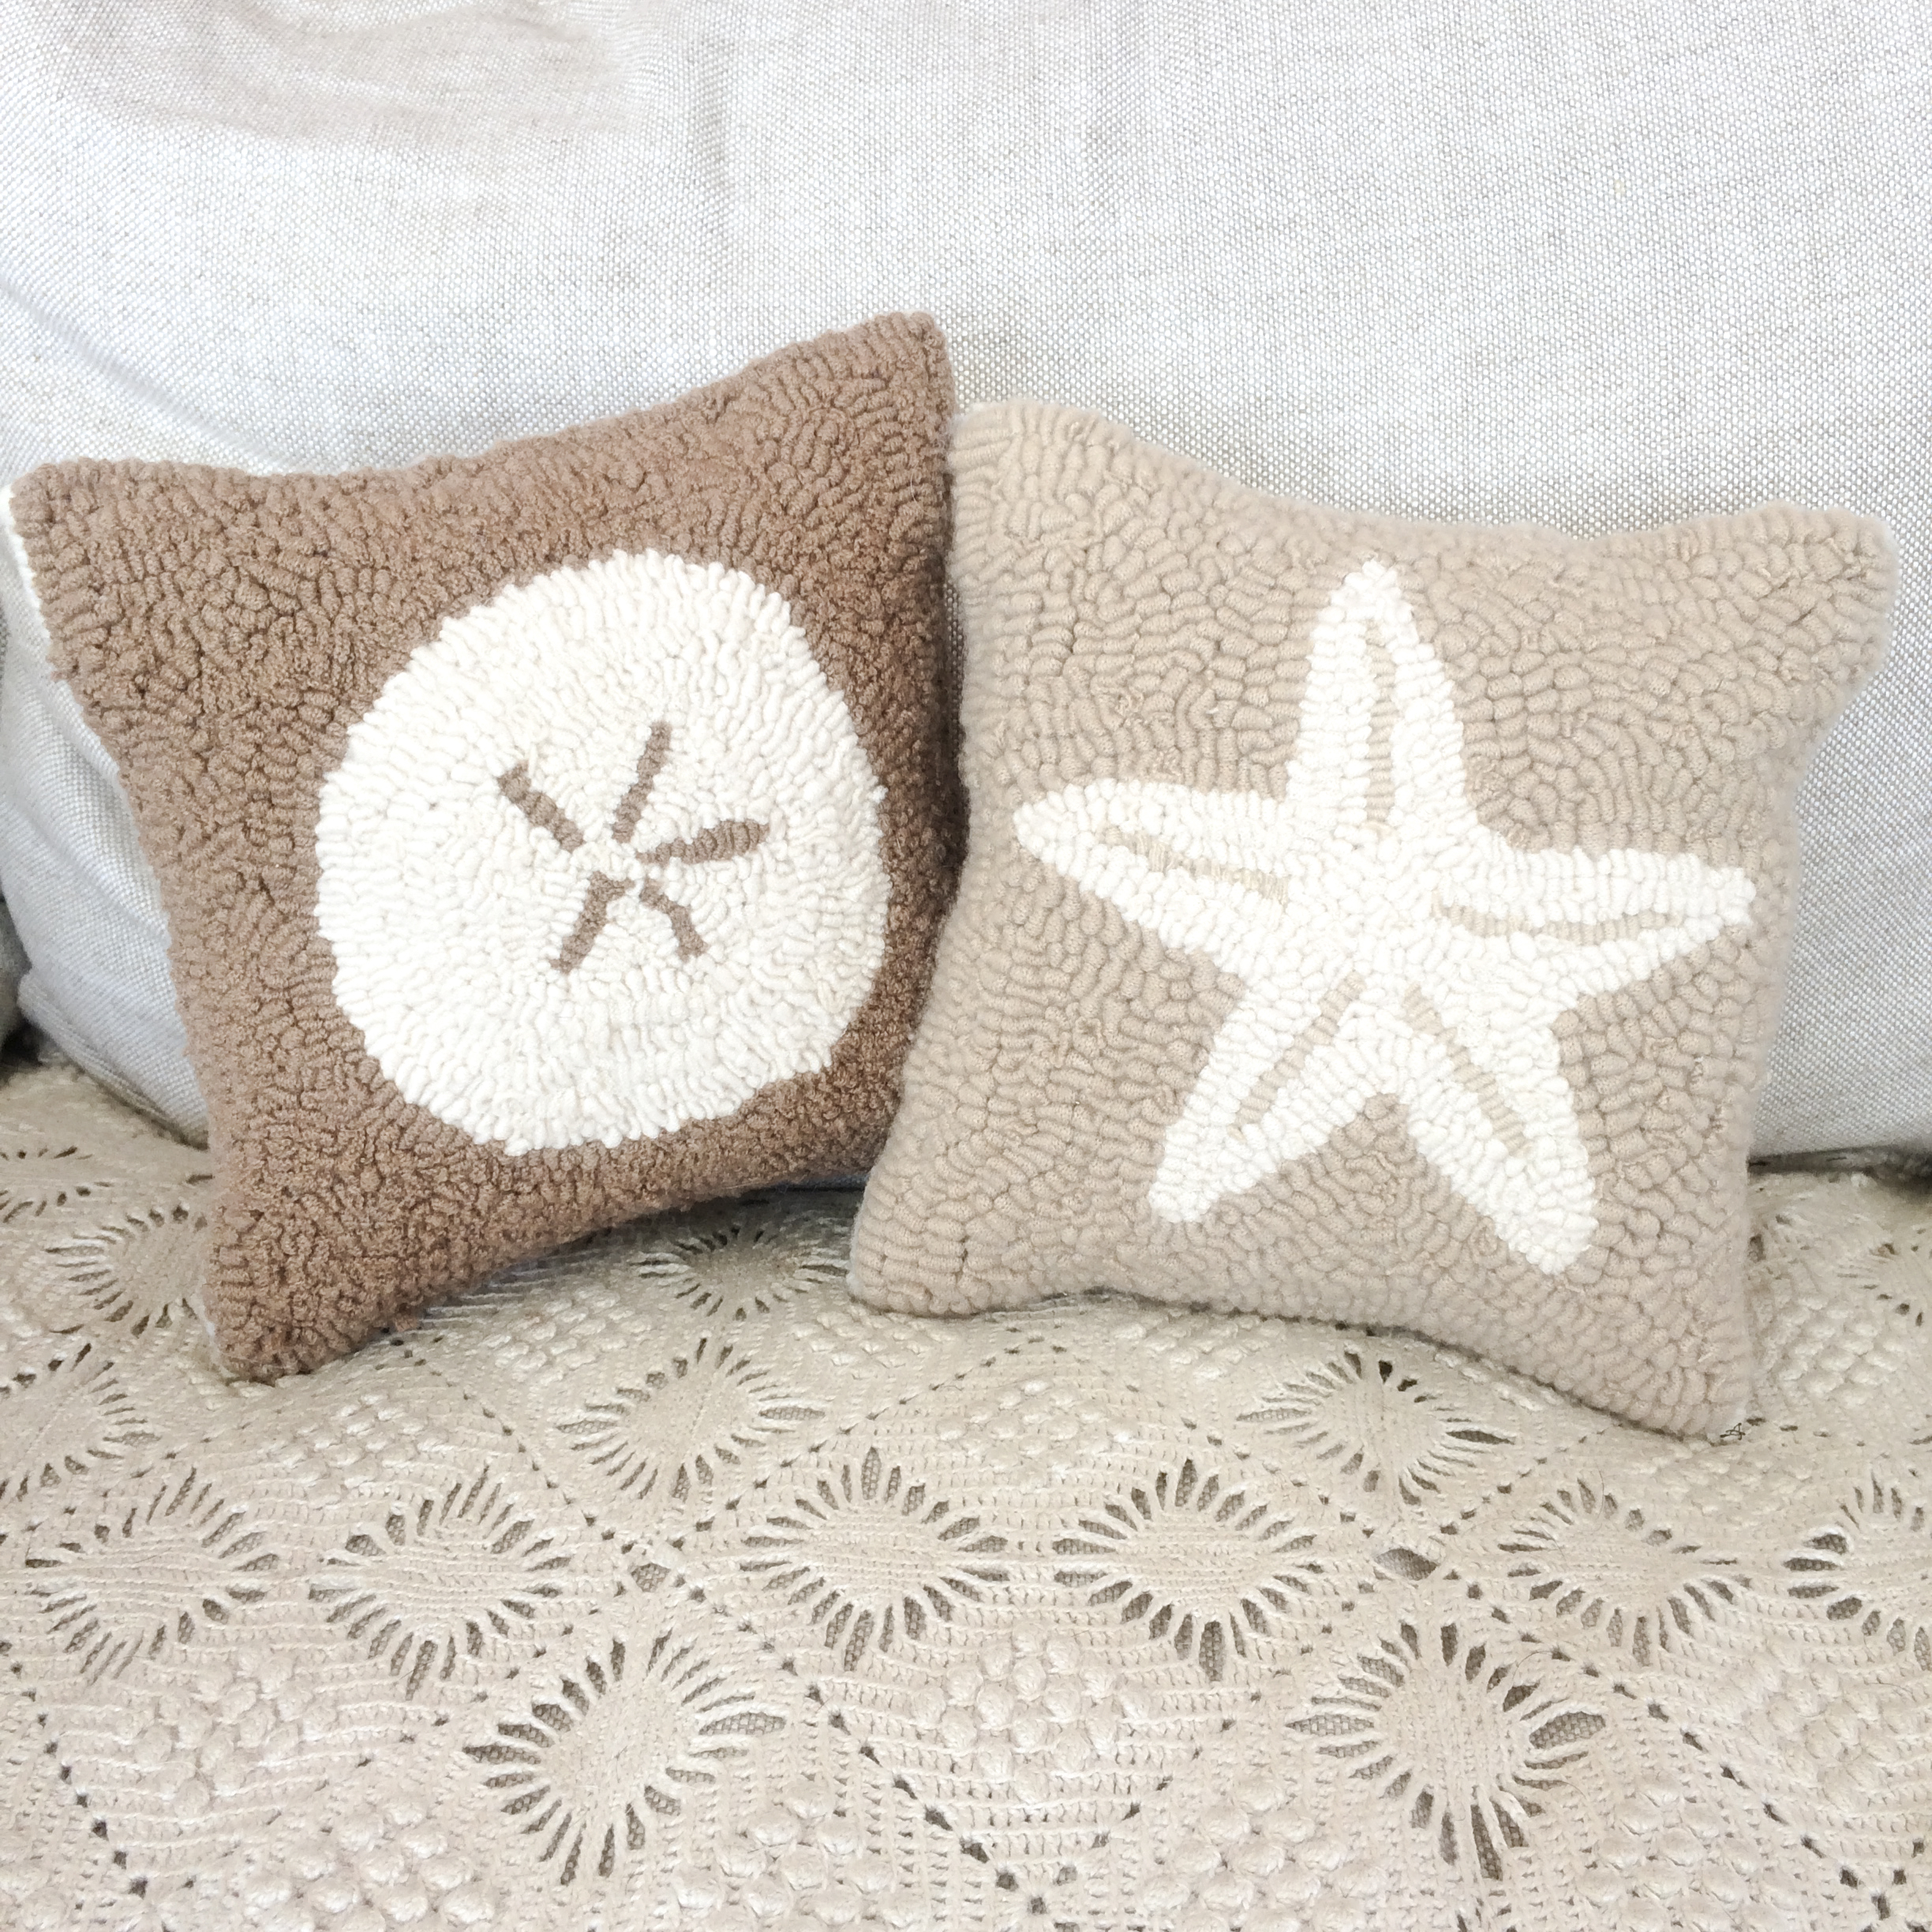 embroidered anchor amazon beaute cushion pillows cover amore com pillow handcrafted dp nautical beach covers throw